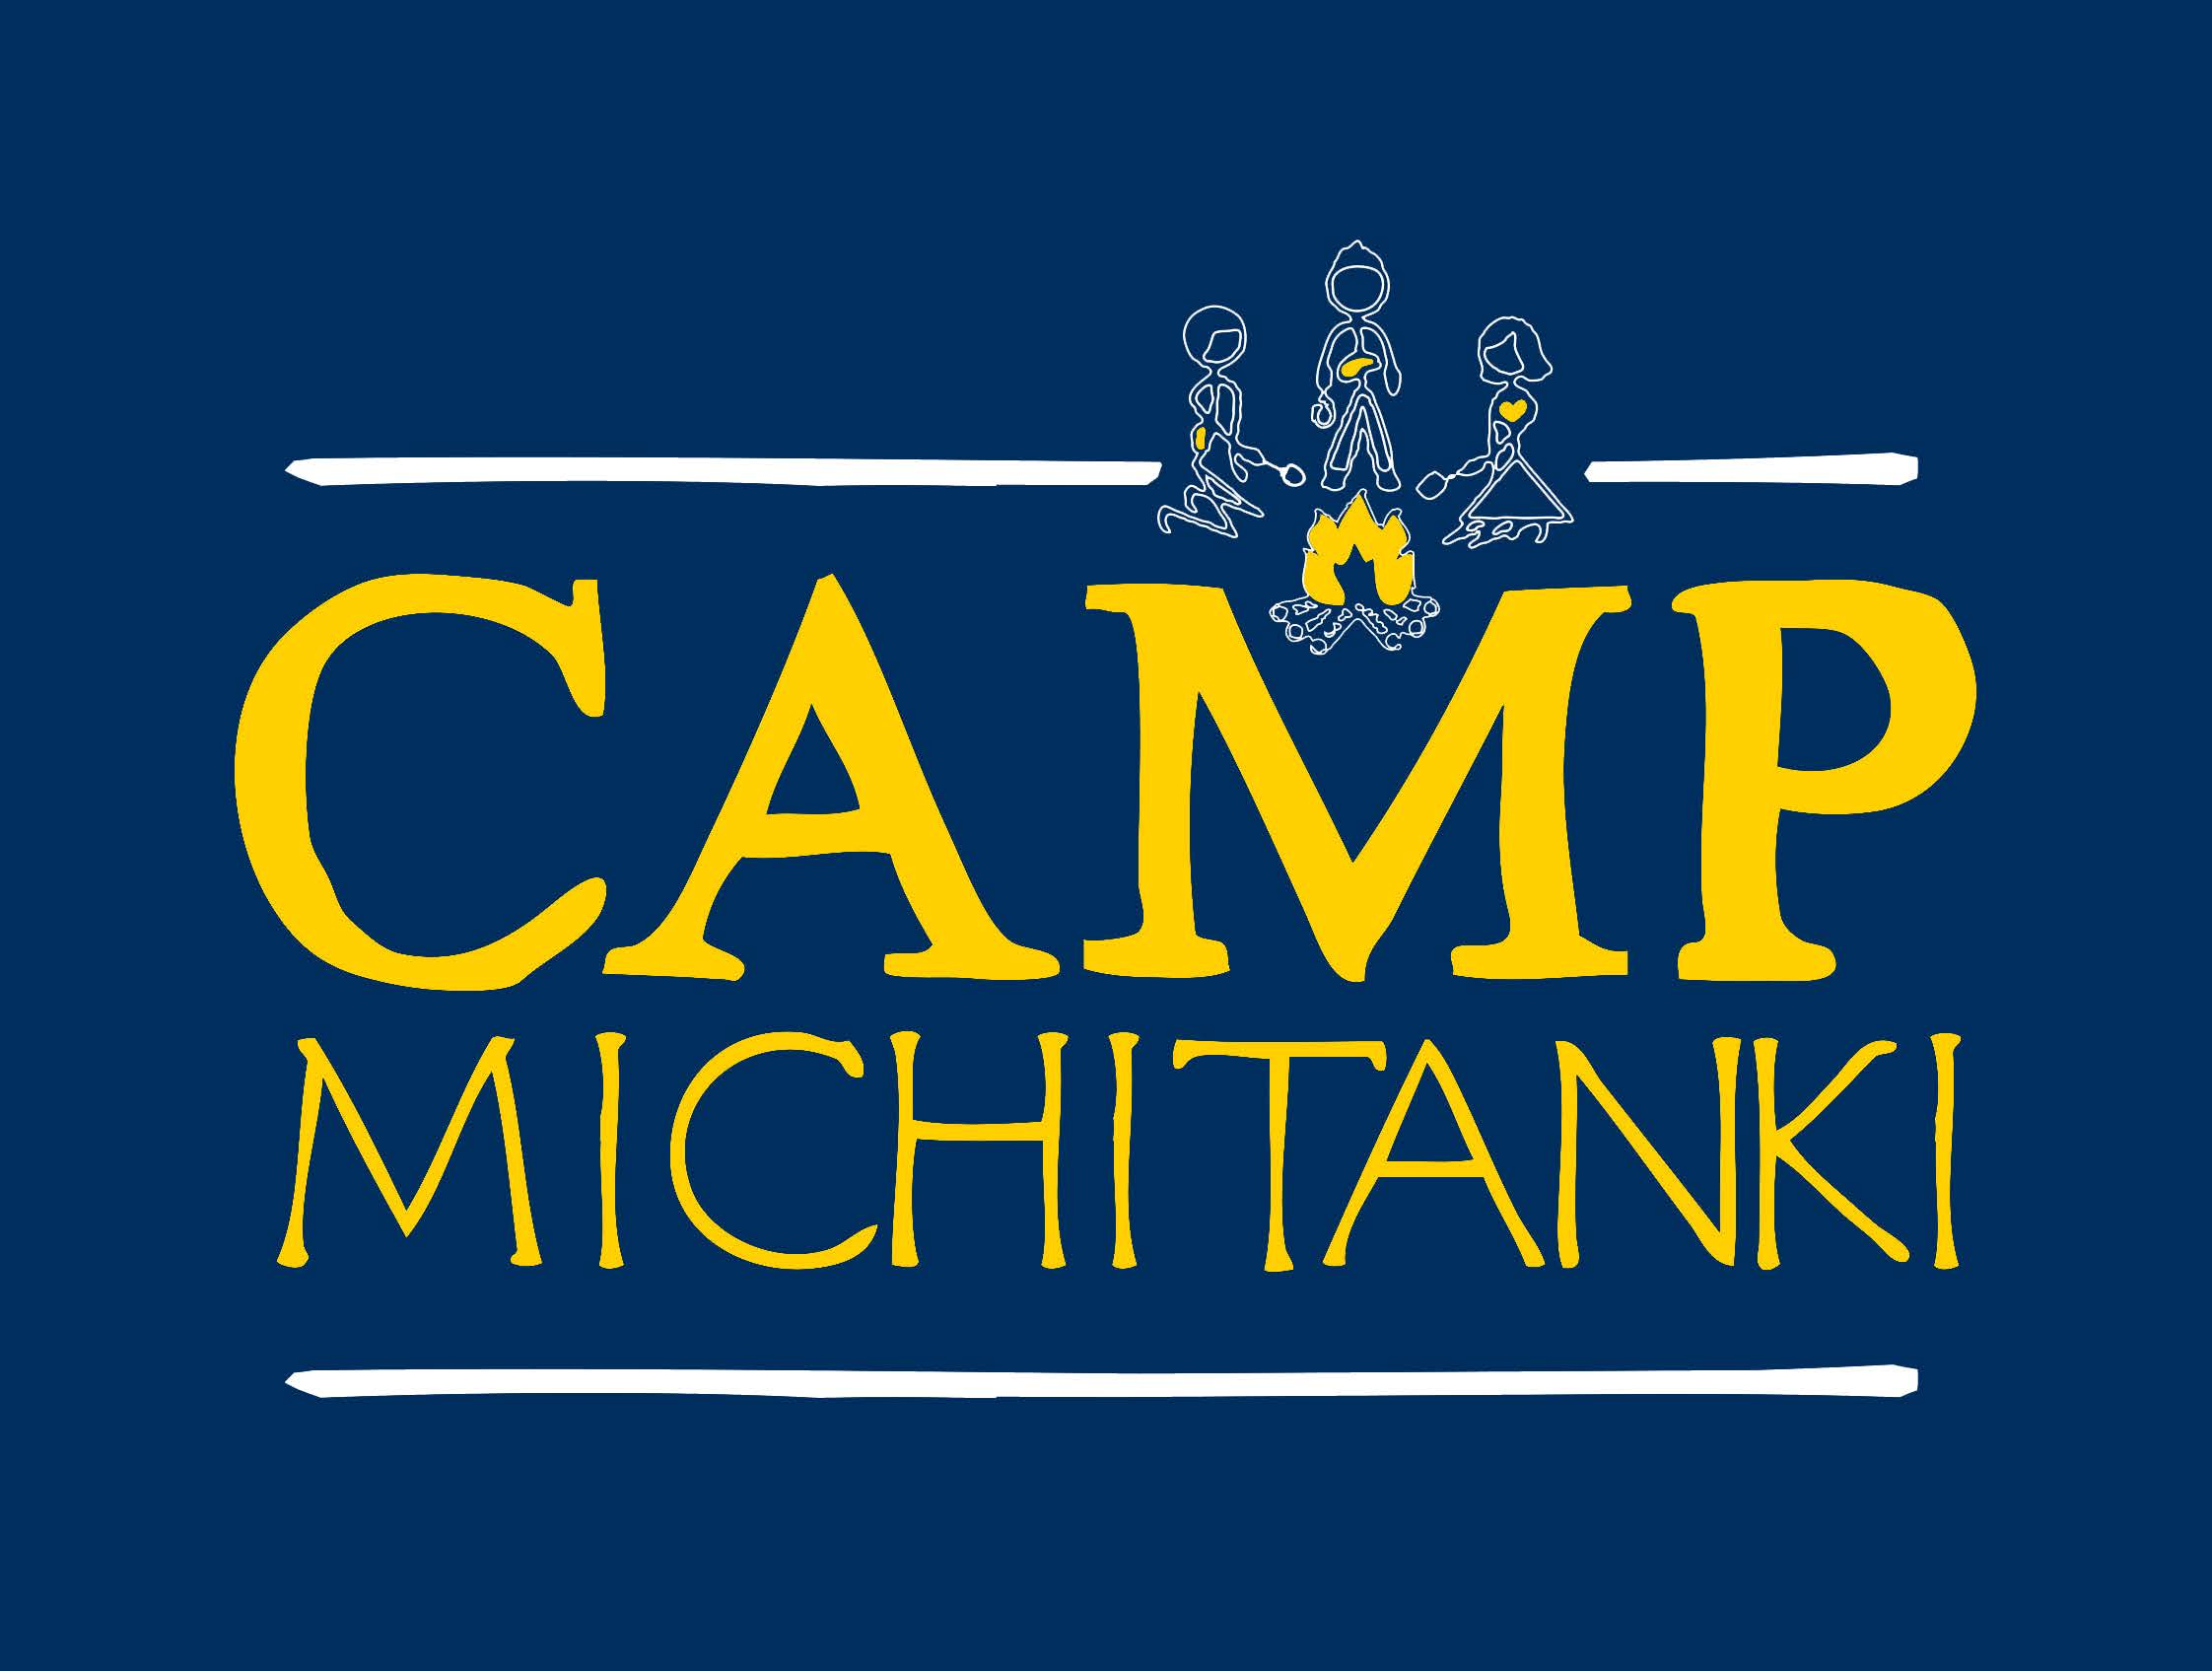 Camp Michitanki